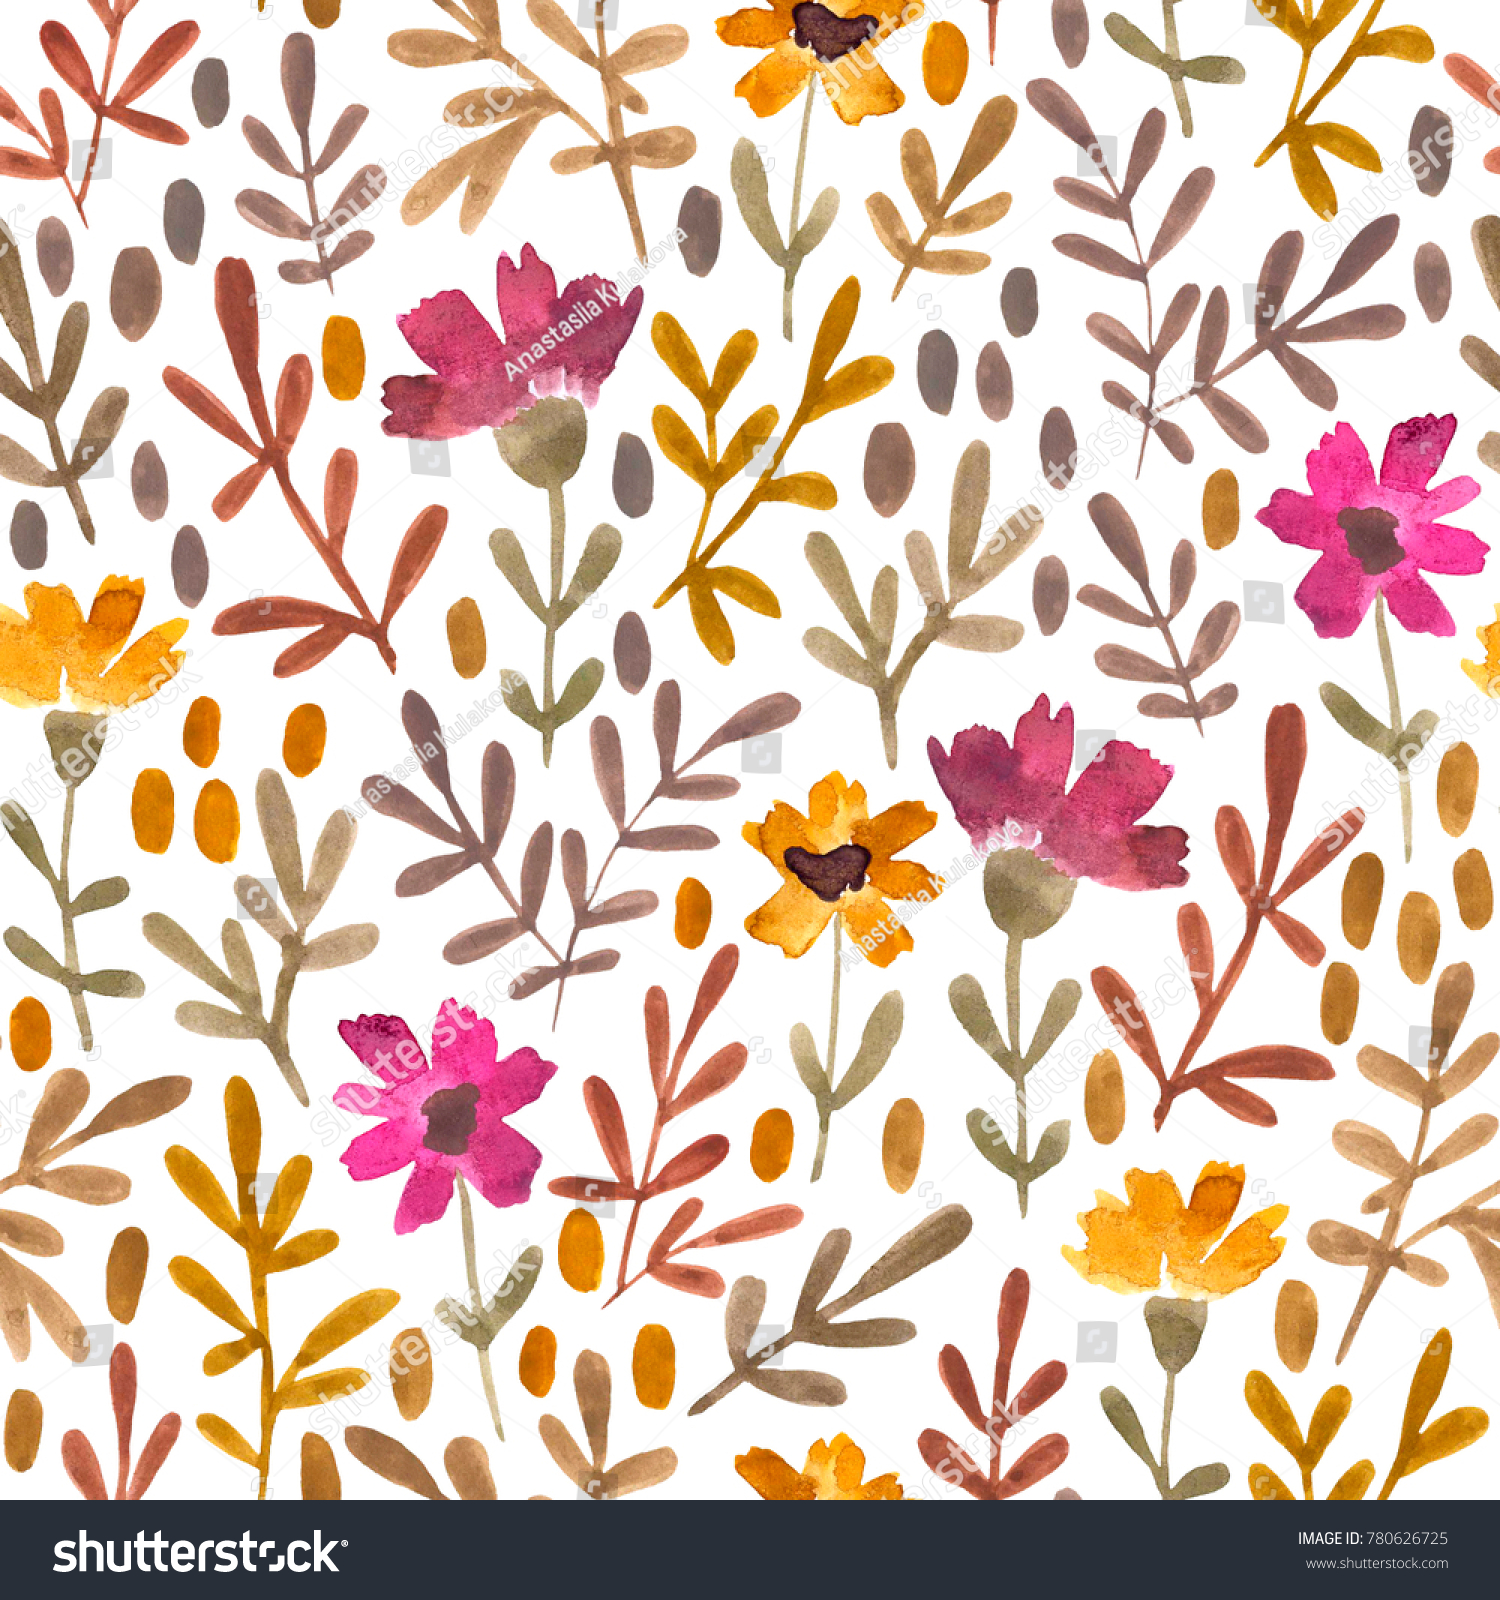 Watercolor Flowers And Leaves Hand Painted Seamless Floral Pattern